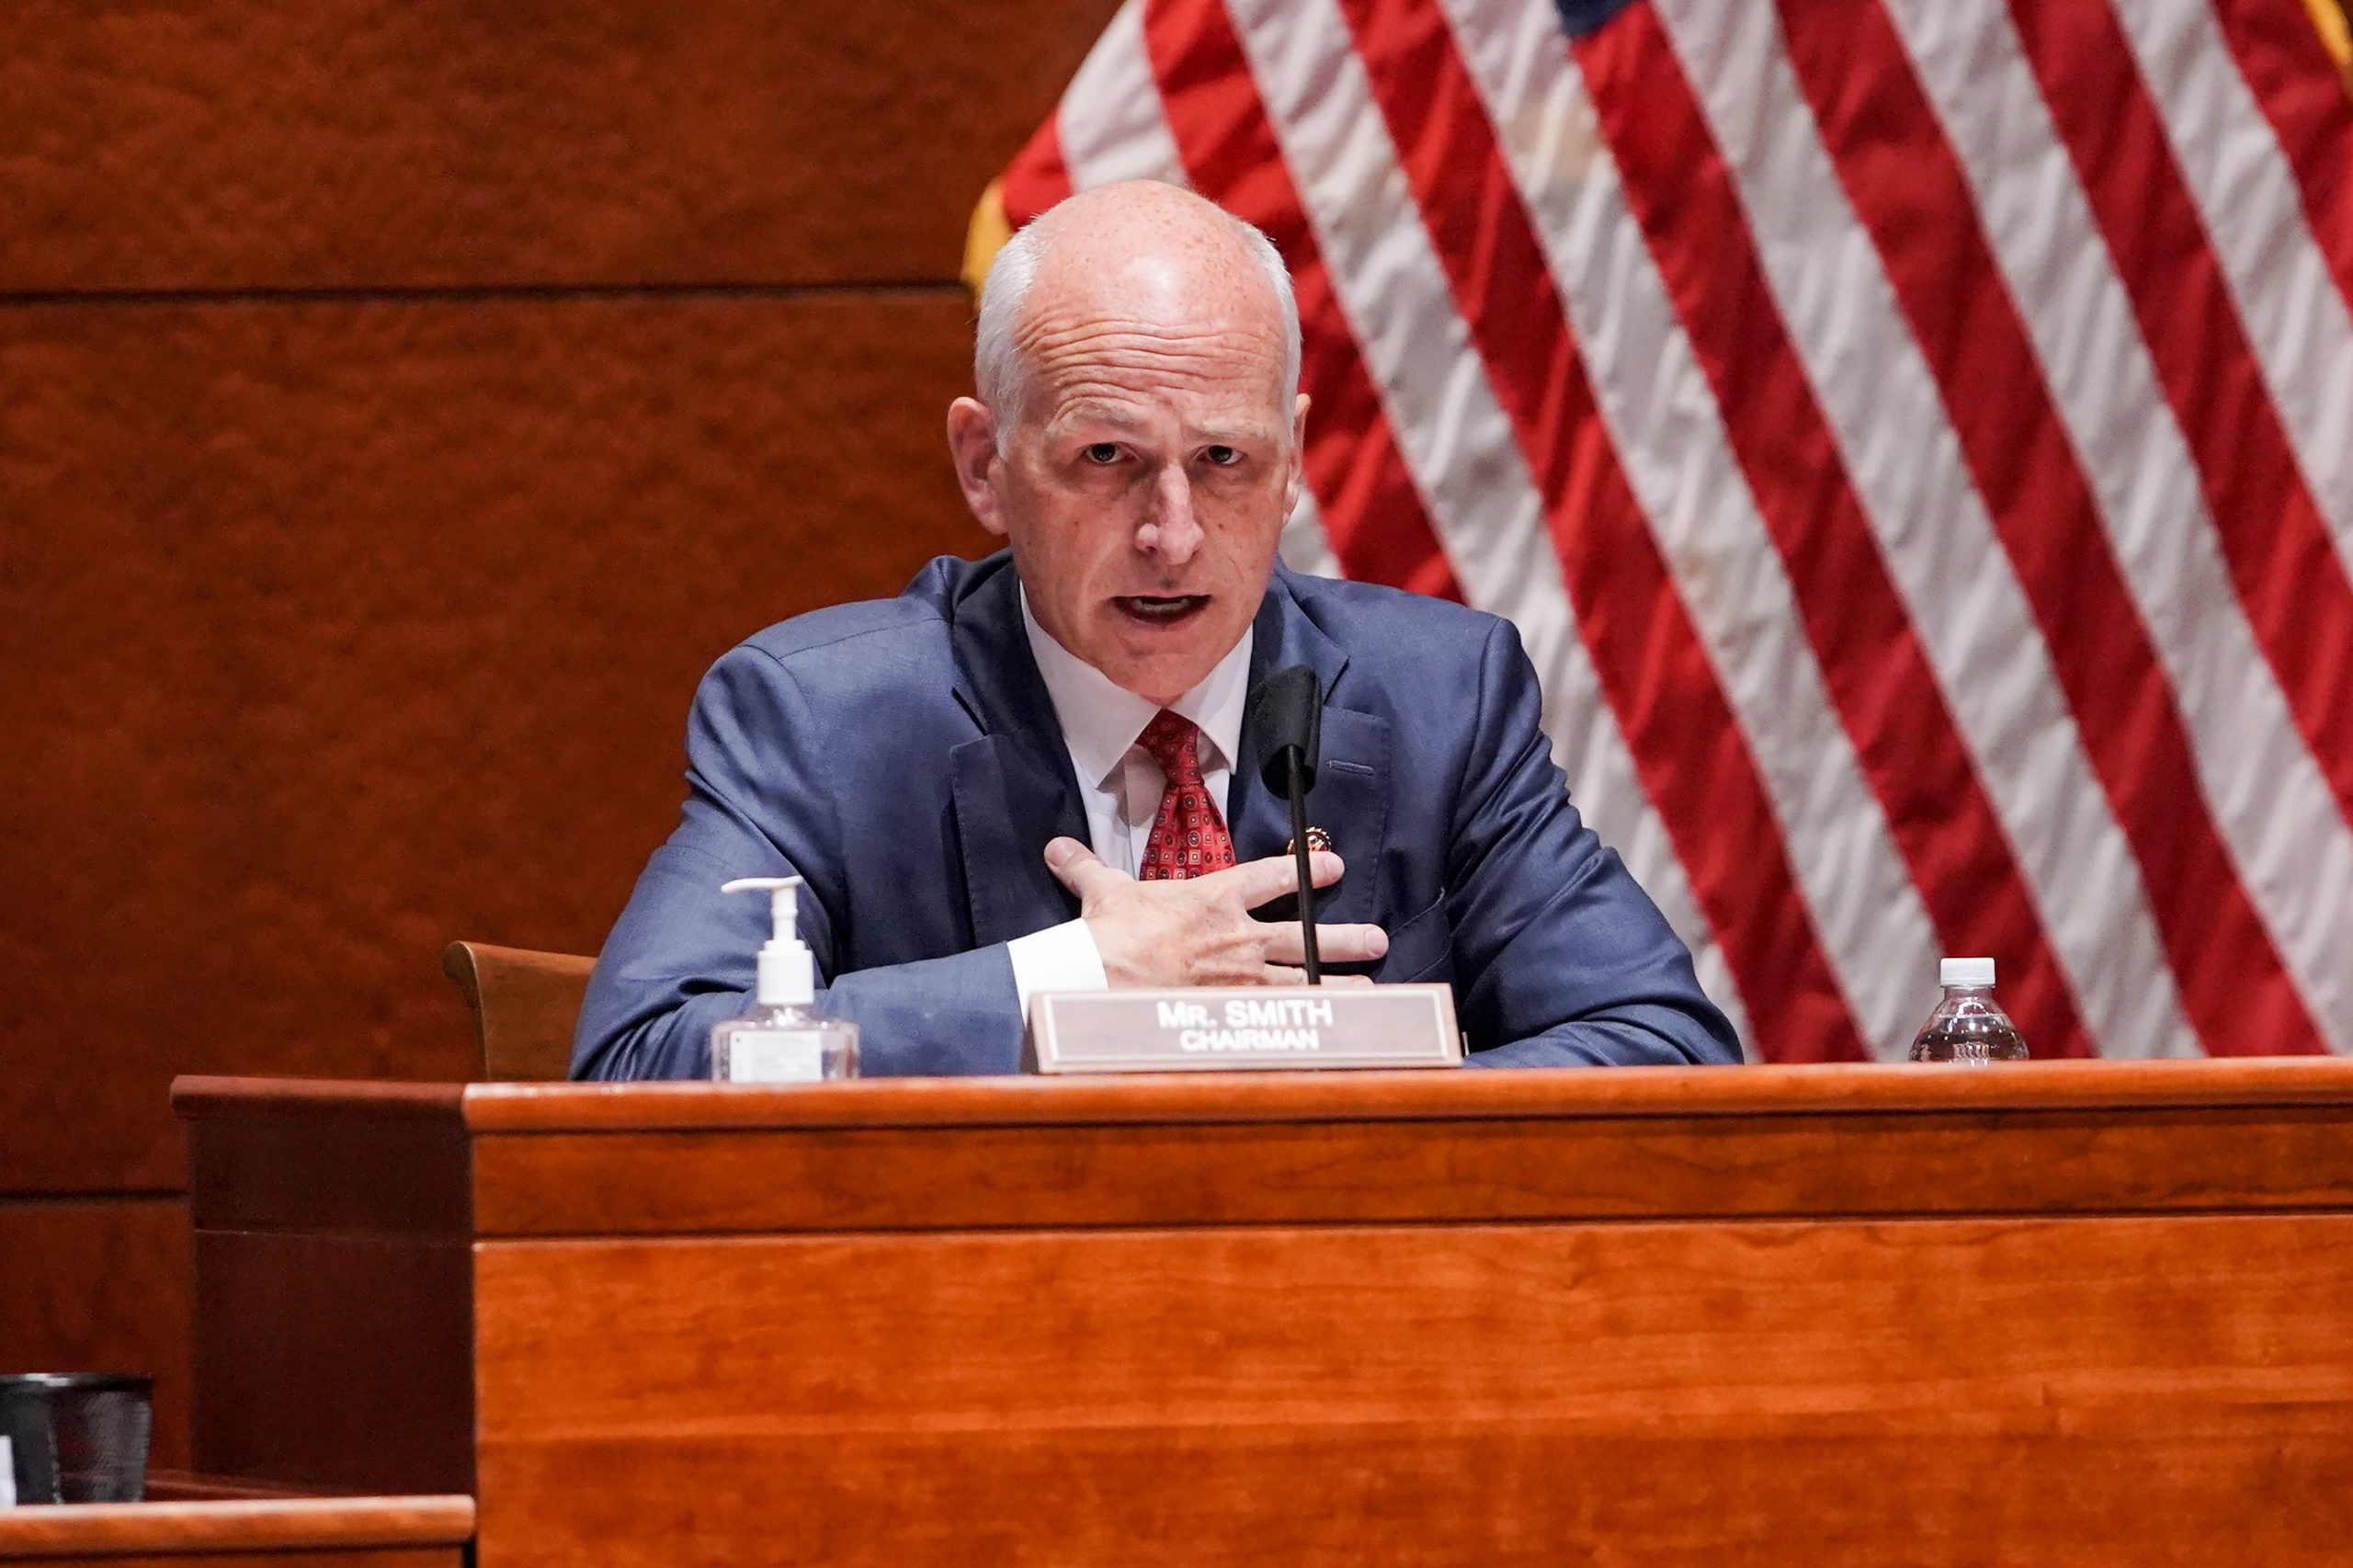 House Armed Services Committee Chairman Adam Smith speaks during a hearing on July 9. (Greg Nash/Pool/AFP via Getty Images)